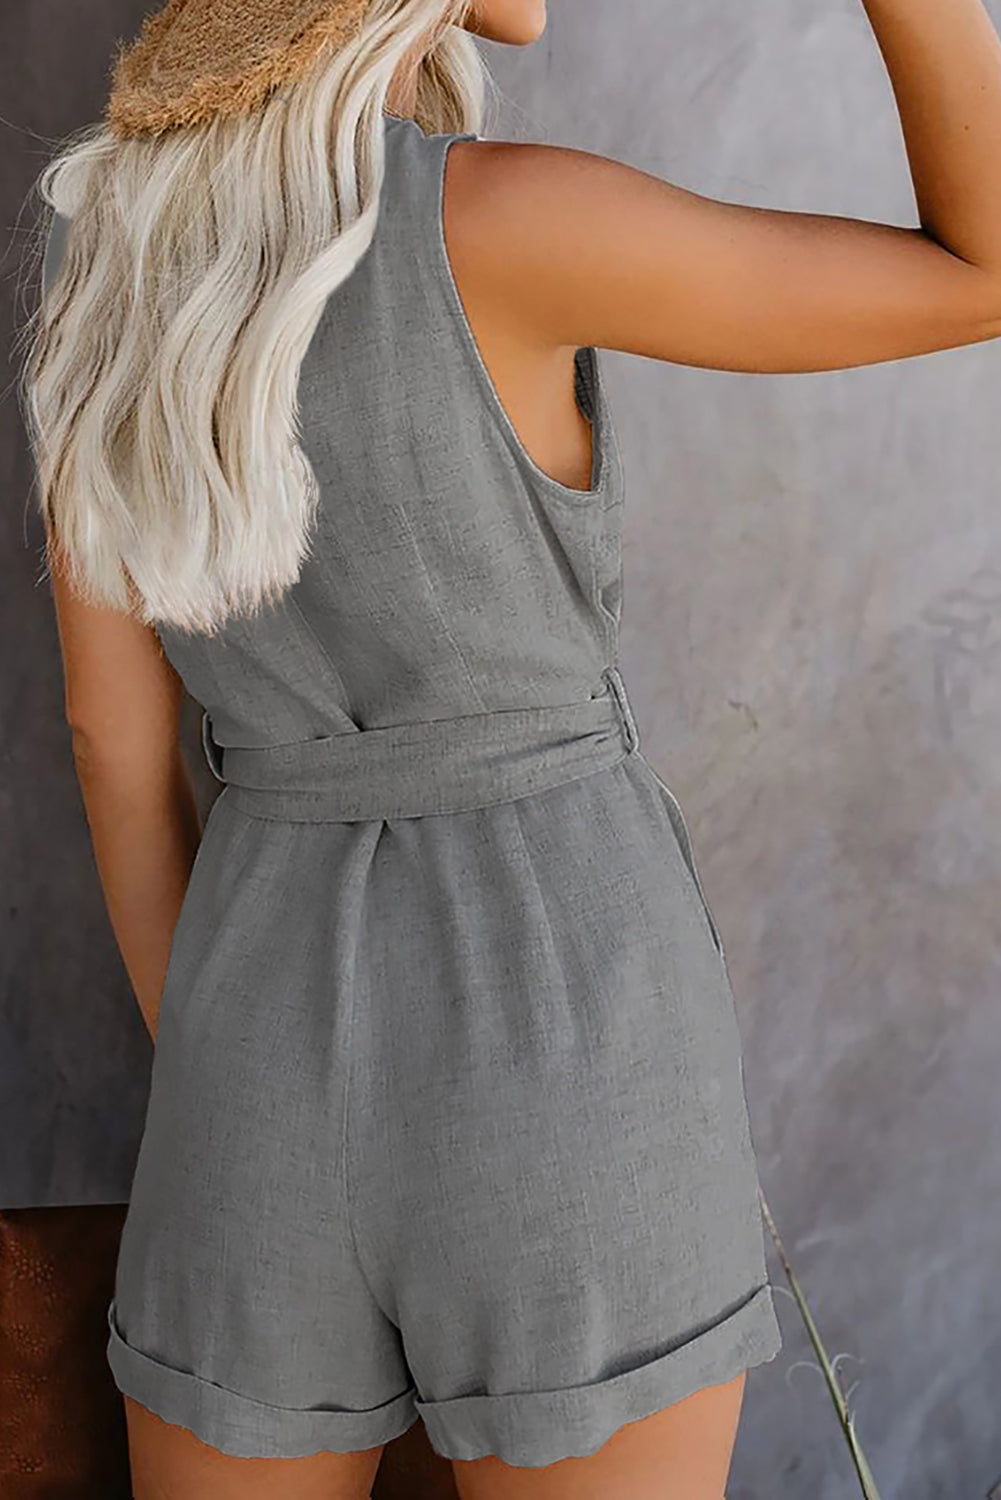 Gray Button V Neck Romper with Belt Jumpsuits & Rompers Discount Designer Fashion Clothes Shoes Bags Women Men Kids Children Black Owned Business